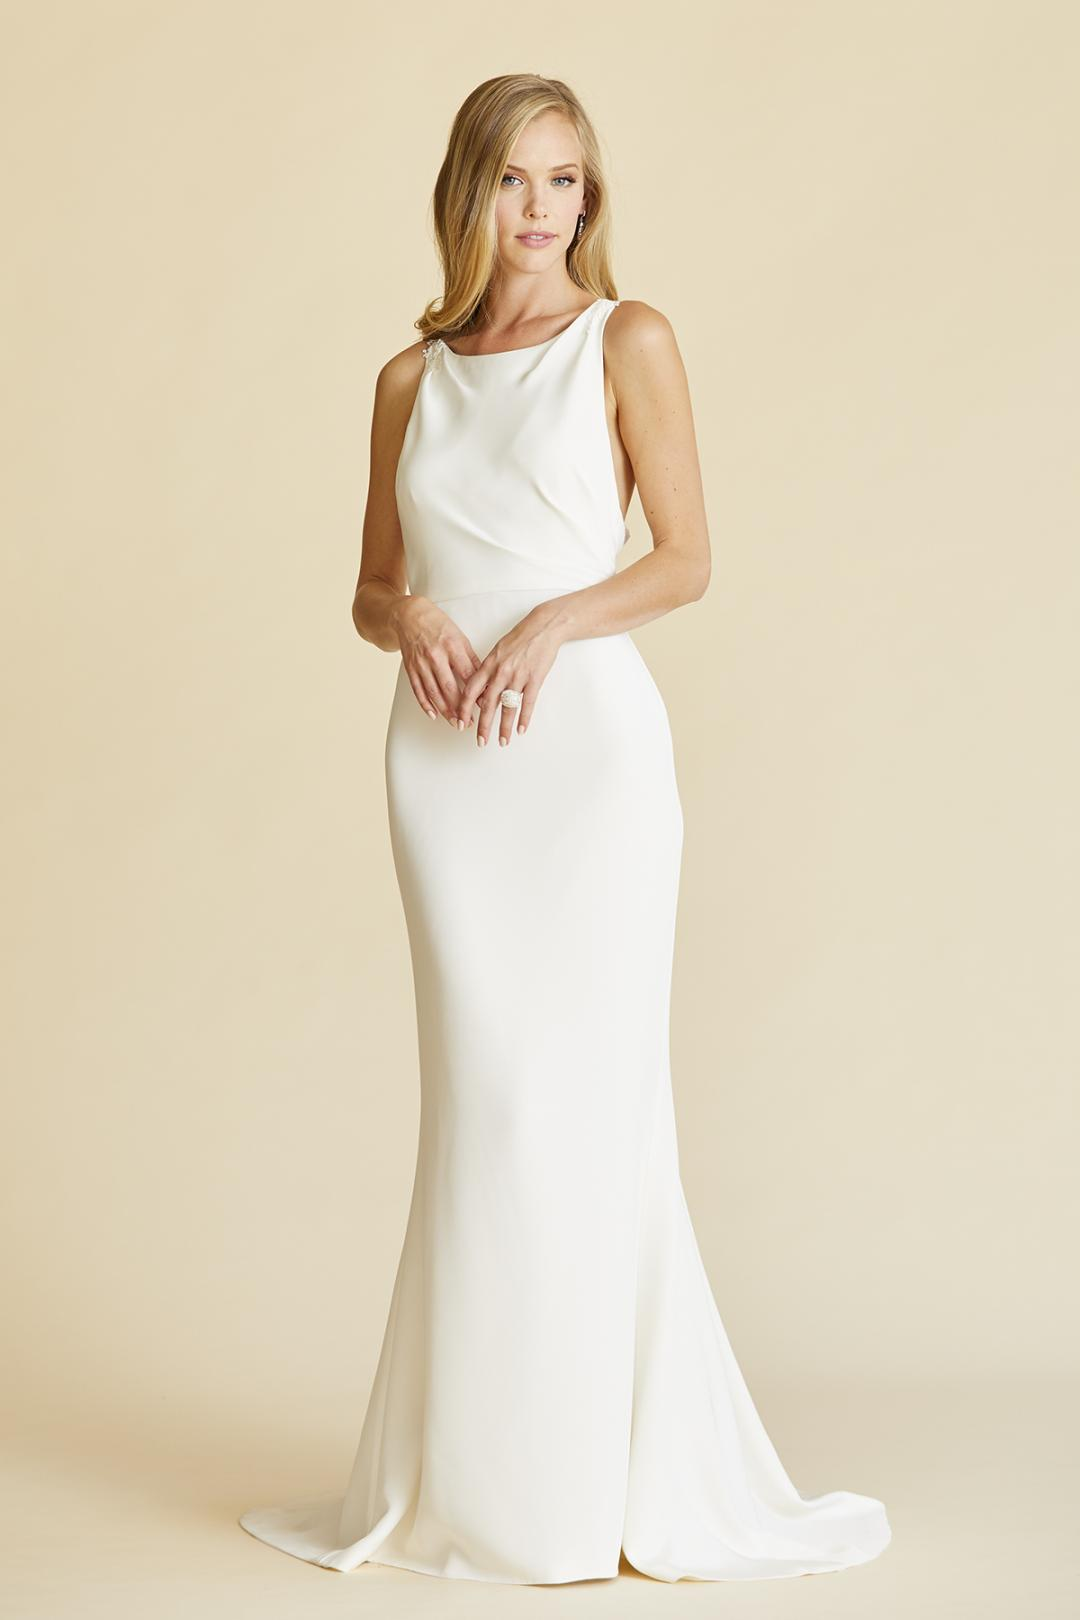 Classic Wedding Gowns For the Over-8 Bride  PreOwned Wedding Dresses